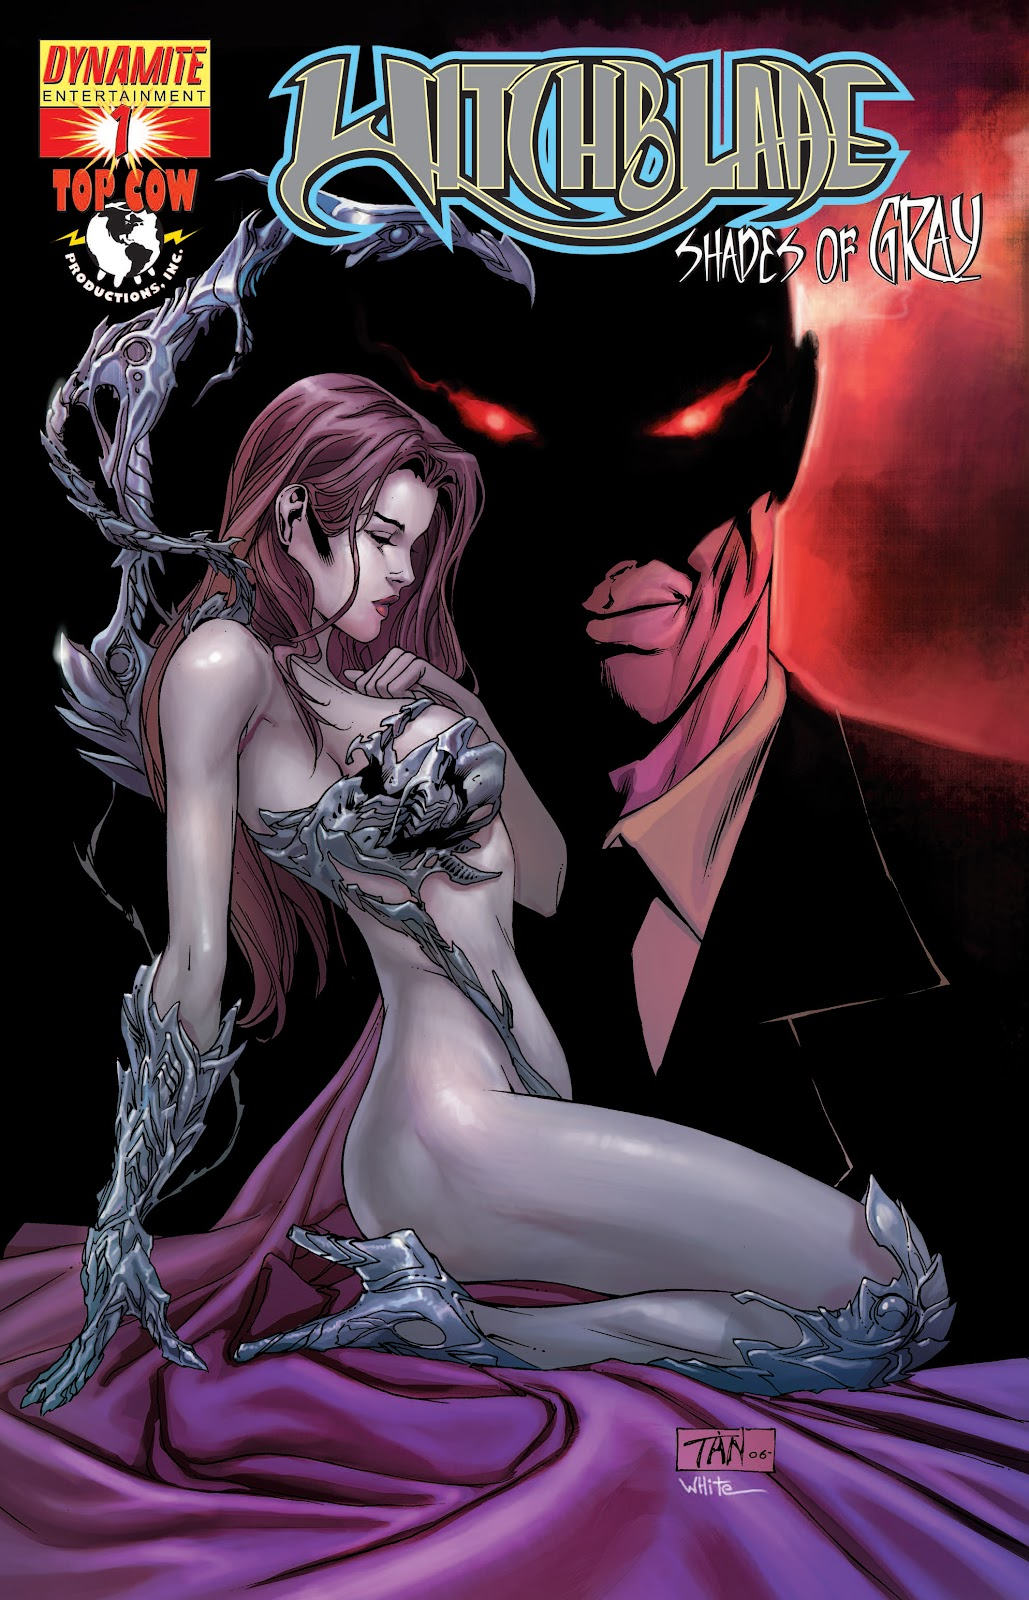 Read online Witchblade: Shades of Gray comic -  Issue #1 - 1